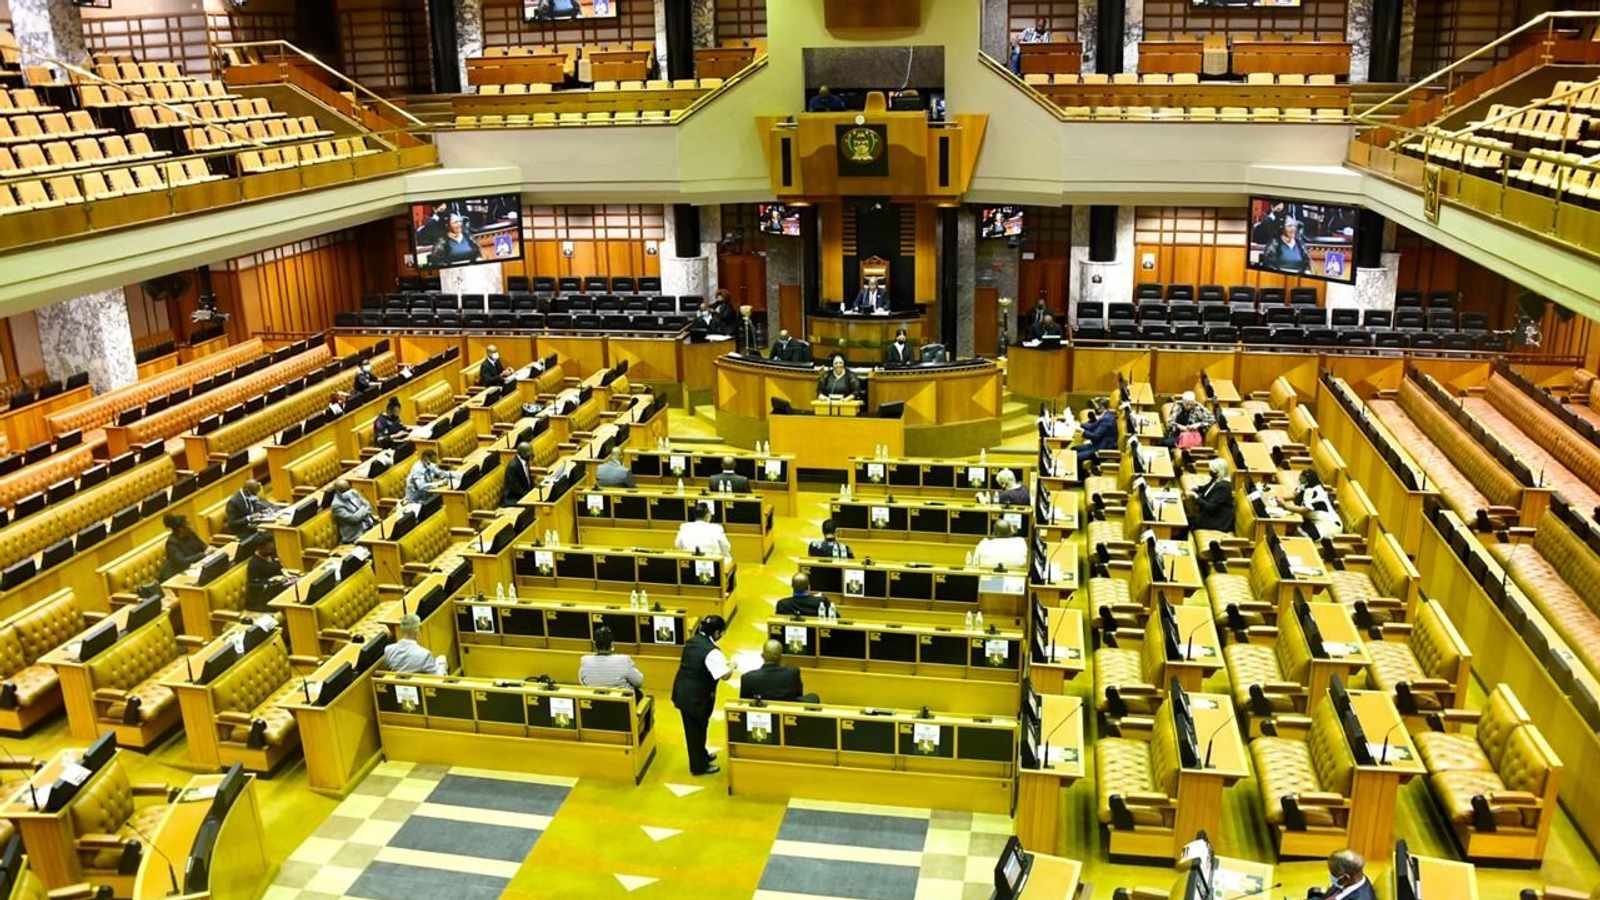 The debate on President Cyril Ramaphosa's State of the Nation Address for 2021 is taking place in the National Assembly on Tuesday and Wednesday. Picture: Siyabulela Duda/GCIS